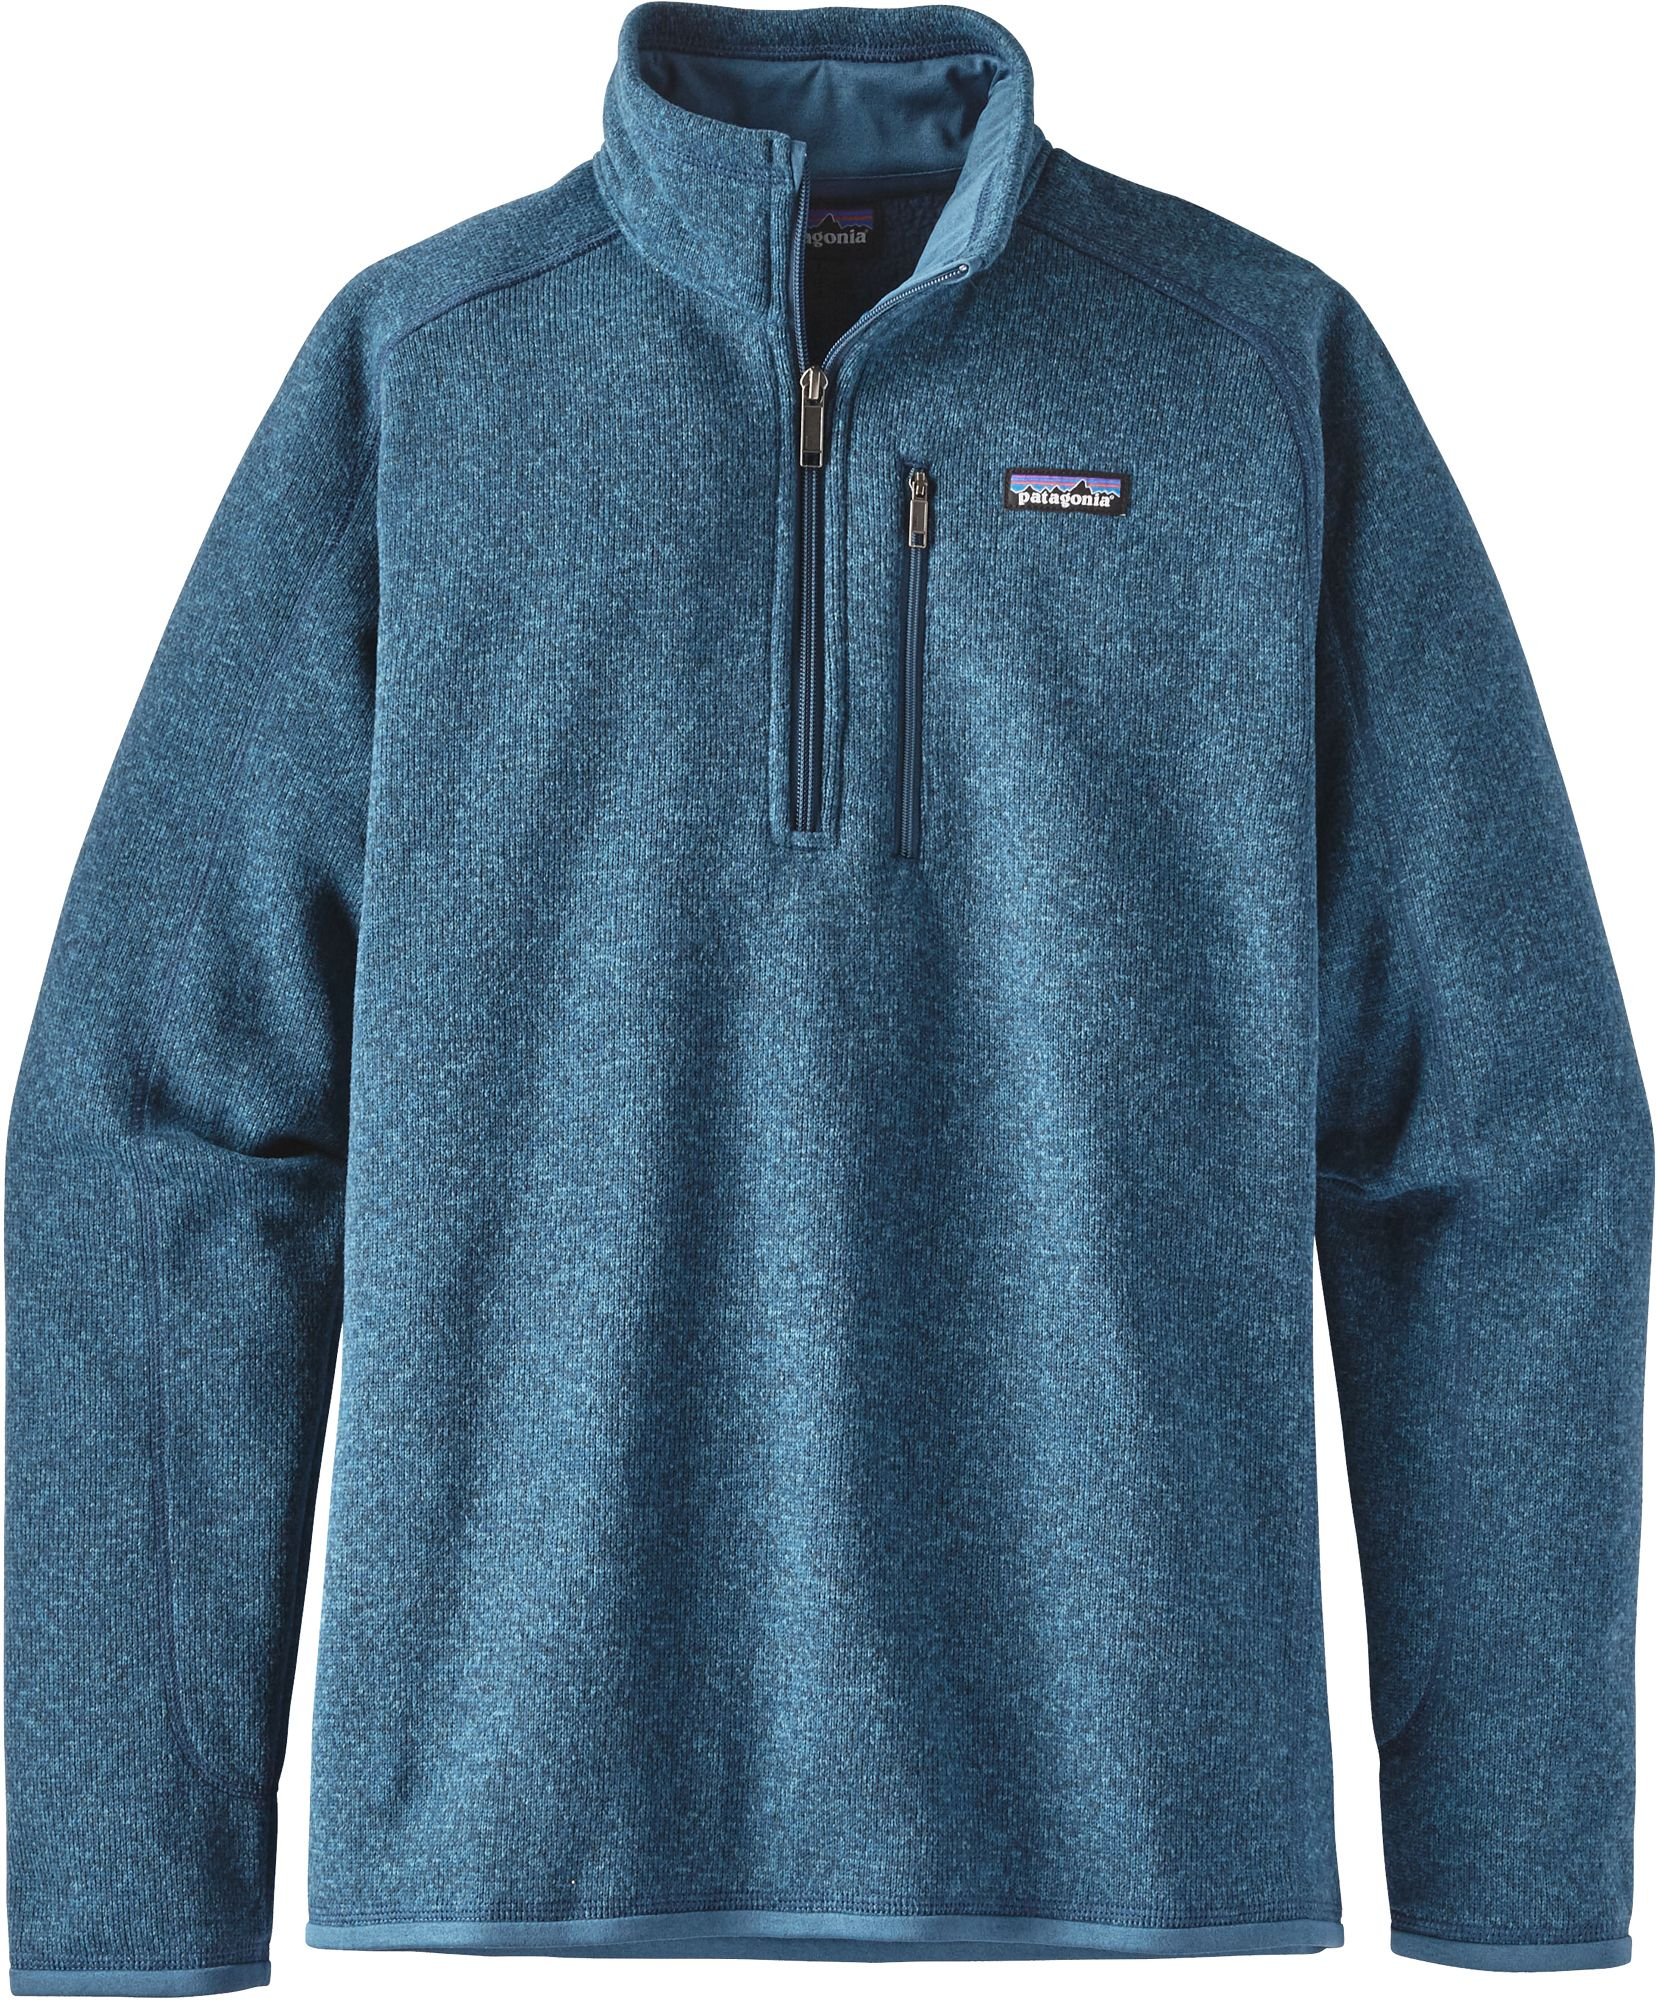 Patagonia Men's Better Sweater 1/4 Zip Fleece Pullover | DICK'S ...